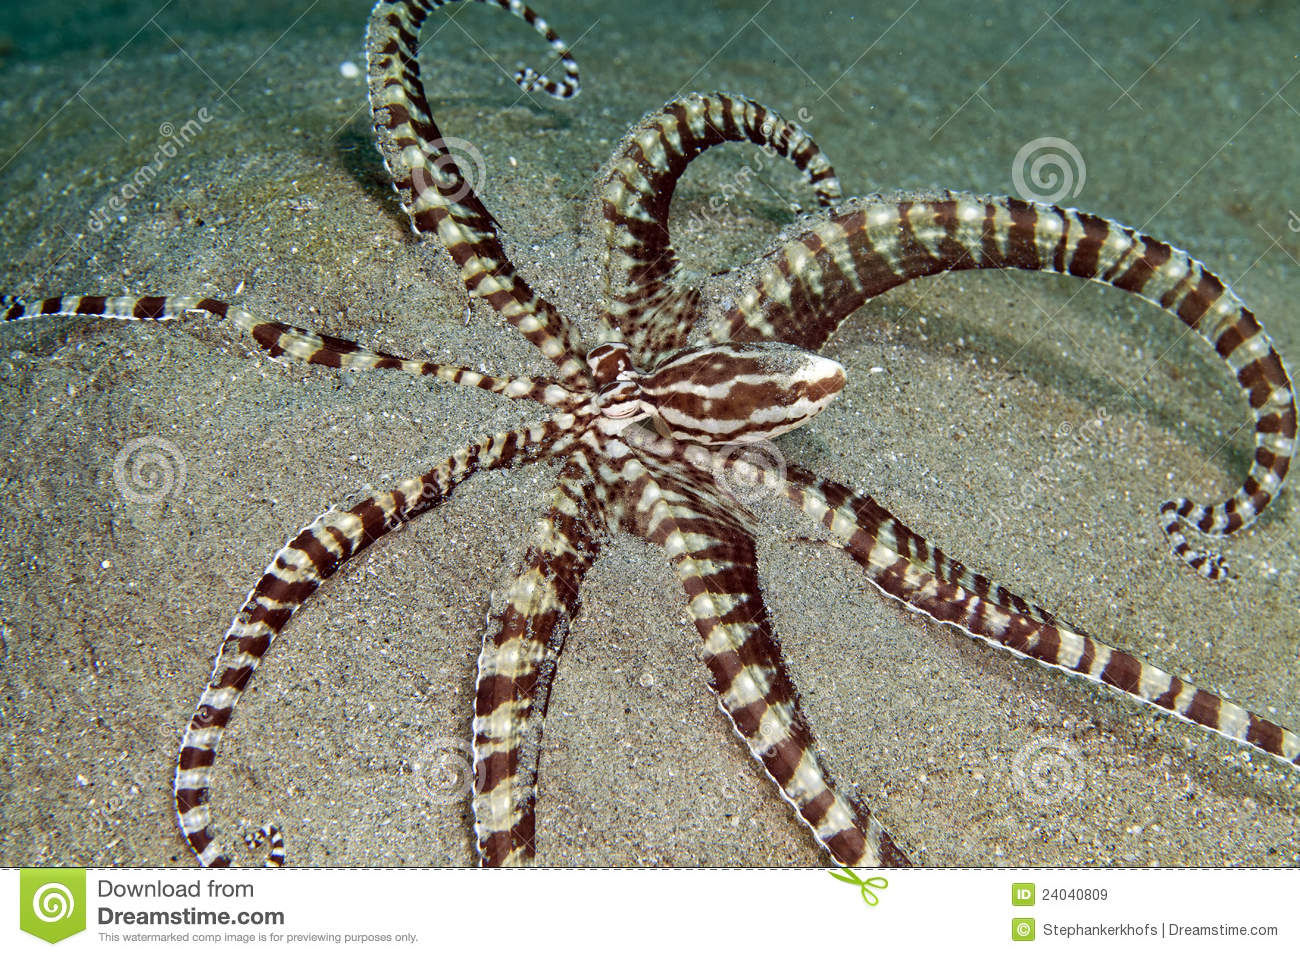 Mimic octopus (thaumoctopus mimicus) in the Red Sea.